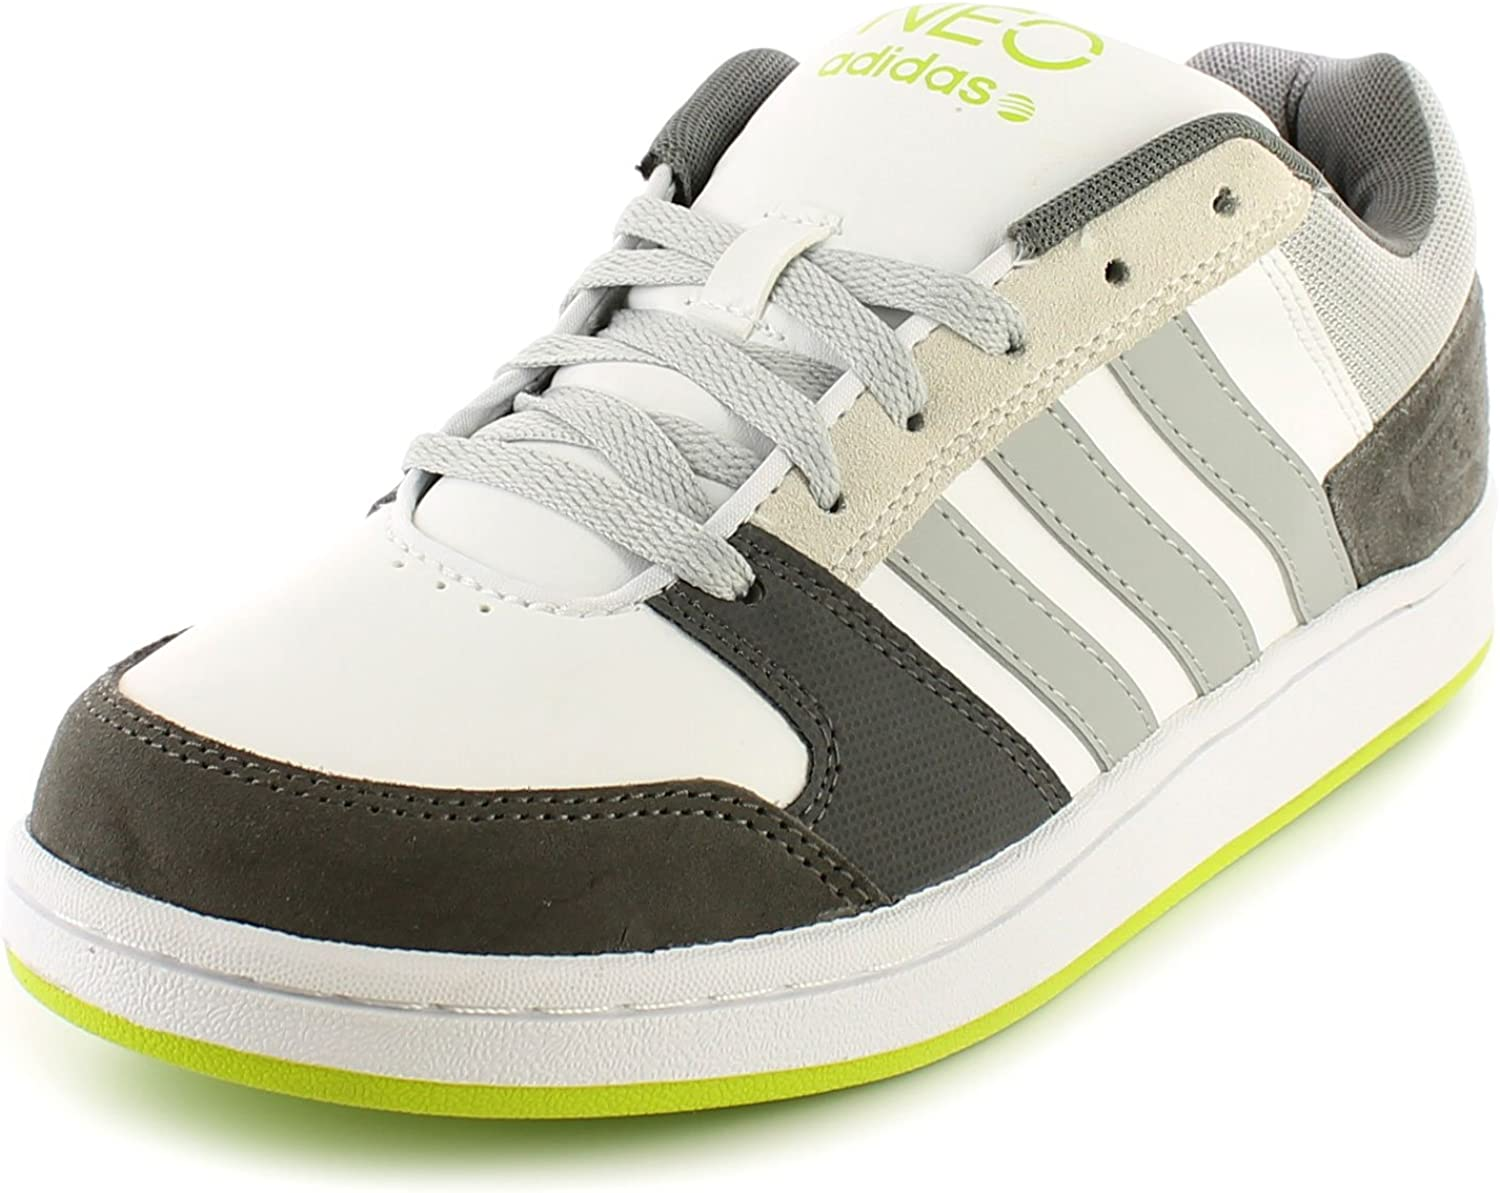 New Mens/Gents Grey Adidas Neo Lawsuit Skate Style Lace Ups ...